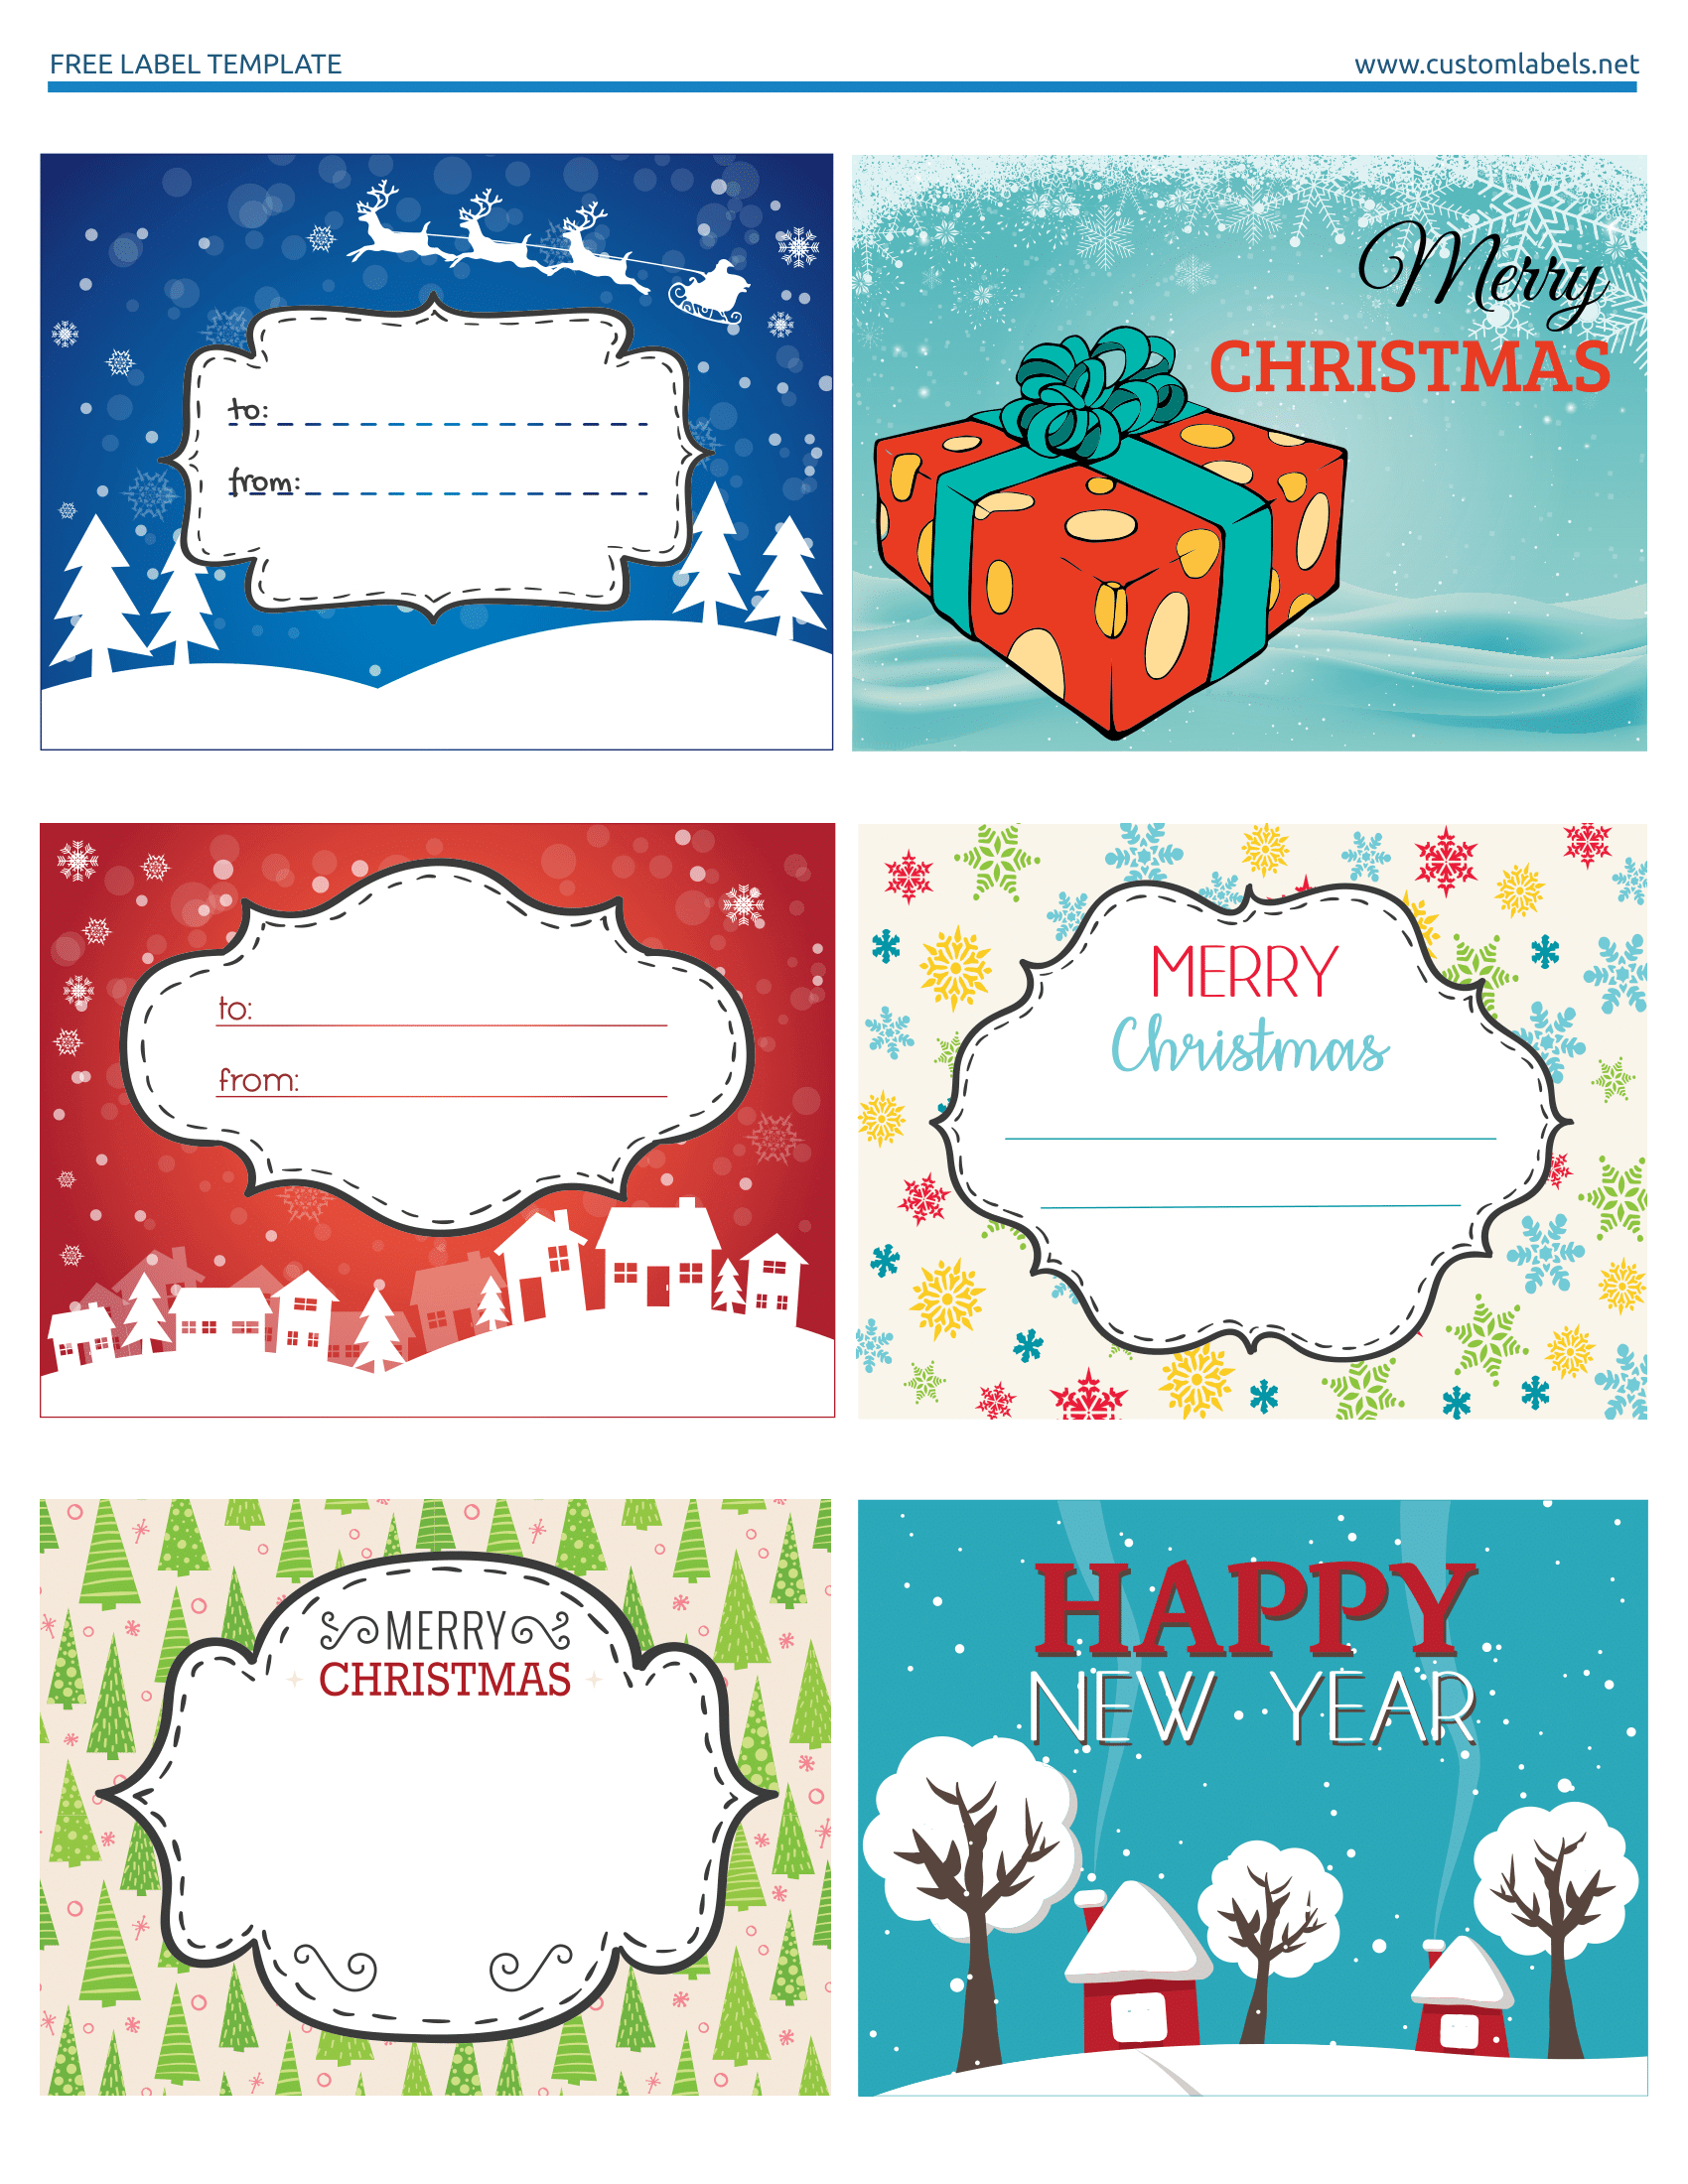 Fun And Colorful Christmas Labels - Free Printables | Free - Christmas Labels Free Printable Templates